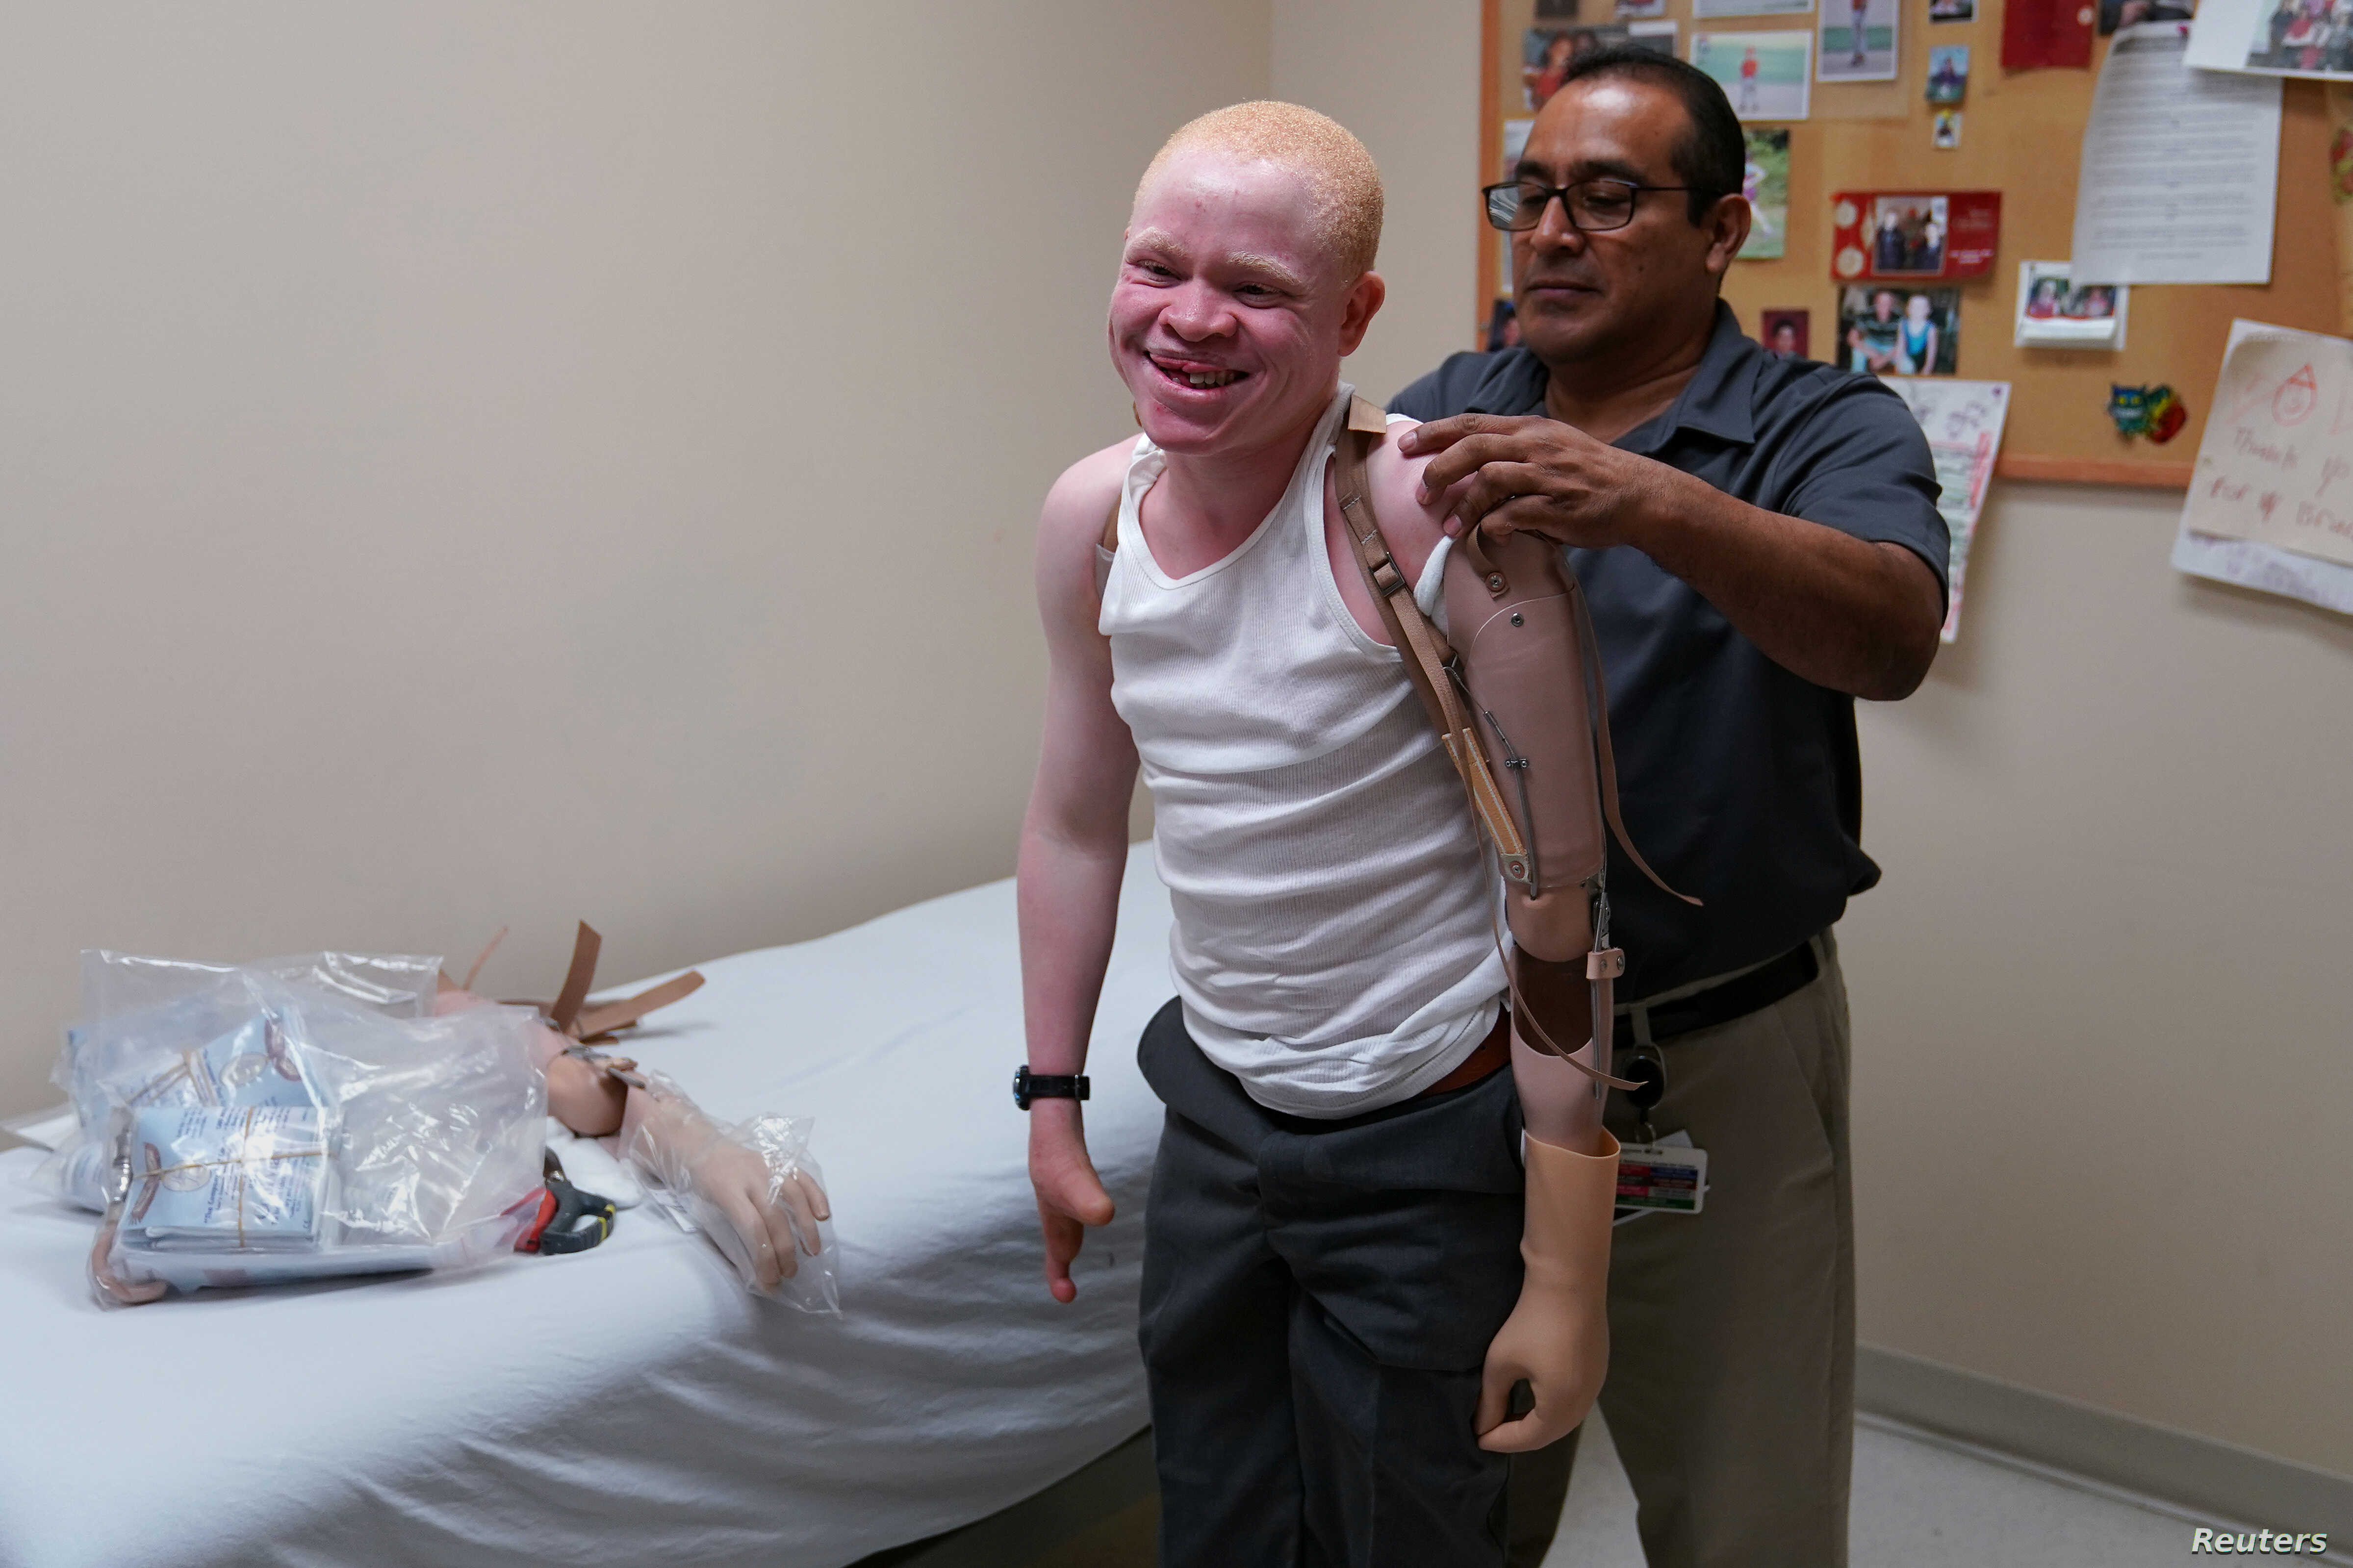 A worker helps Emmanuel Rutema, a Tanzanian with albinism who had his arm chopped off in a superstition-driven attack, put on a new prosthetic arm at the Shriners Hospital in Philadelphia, Pennsylvania, May 30, 2017.